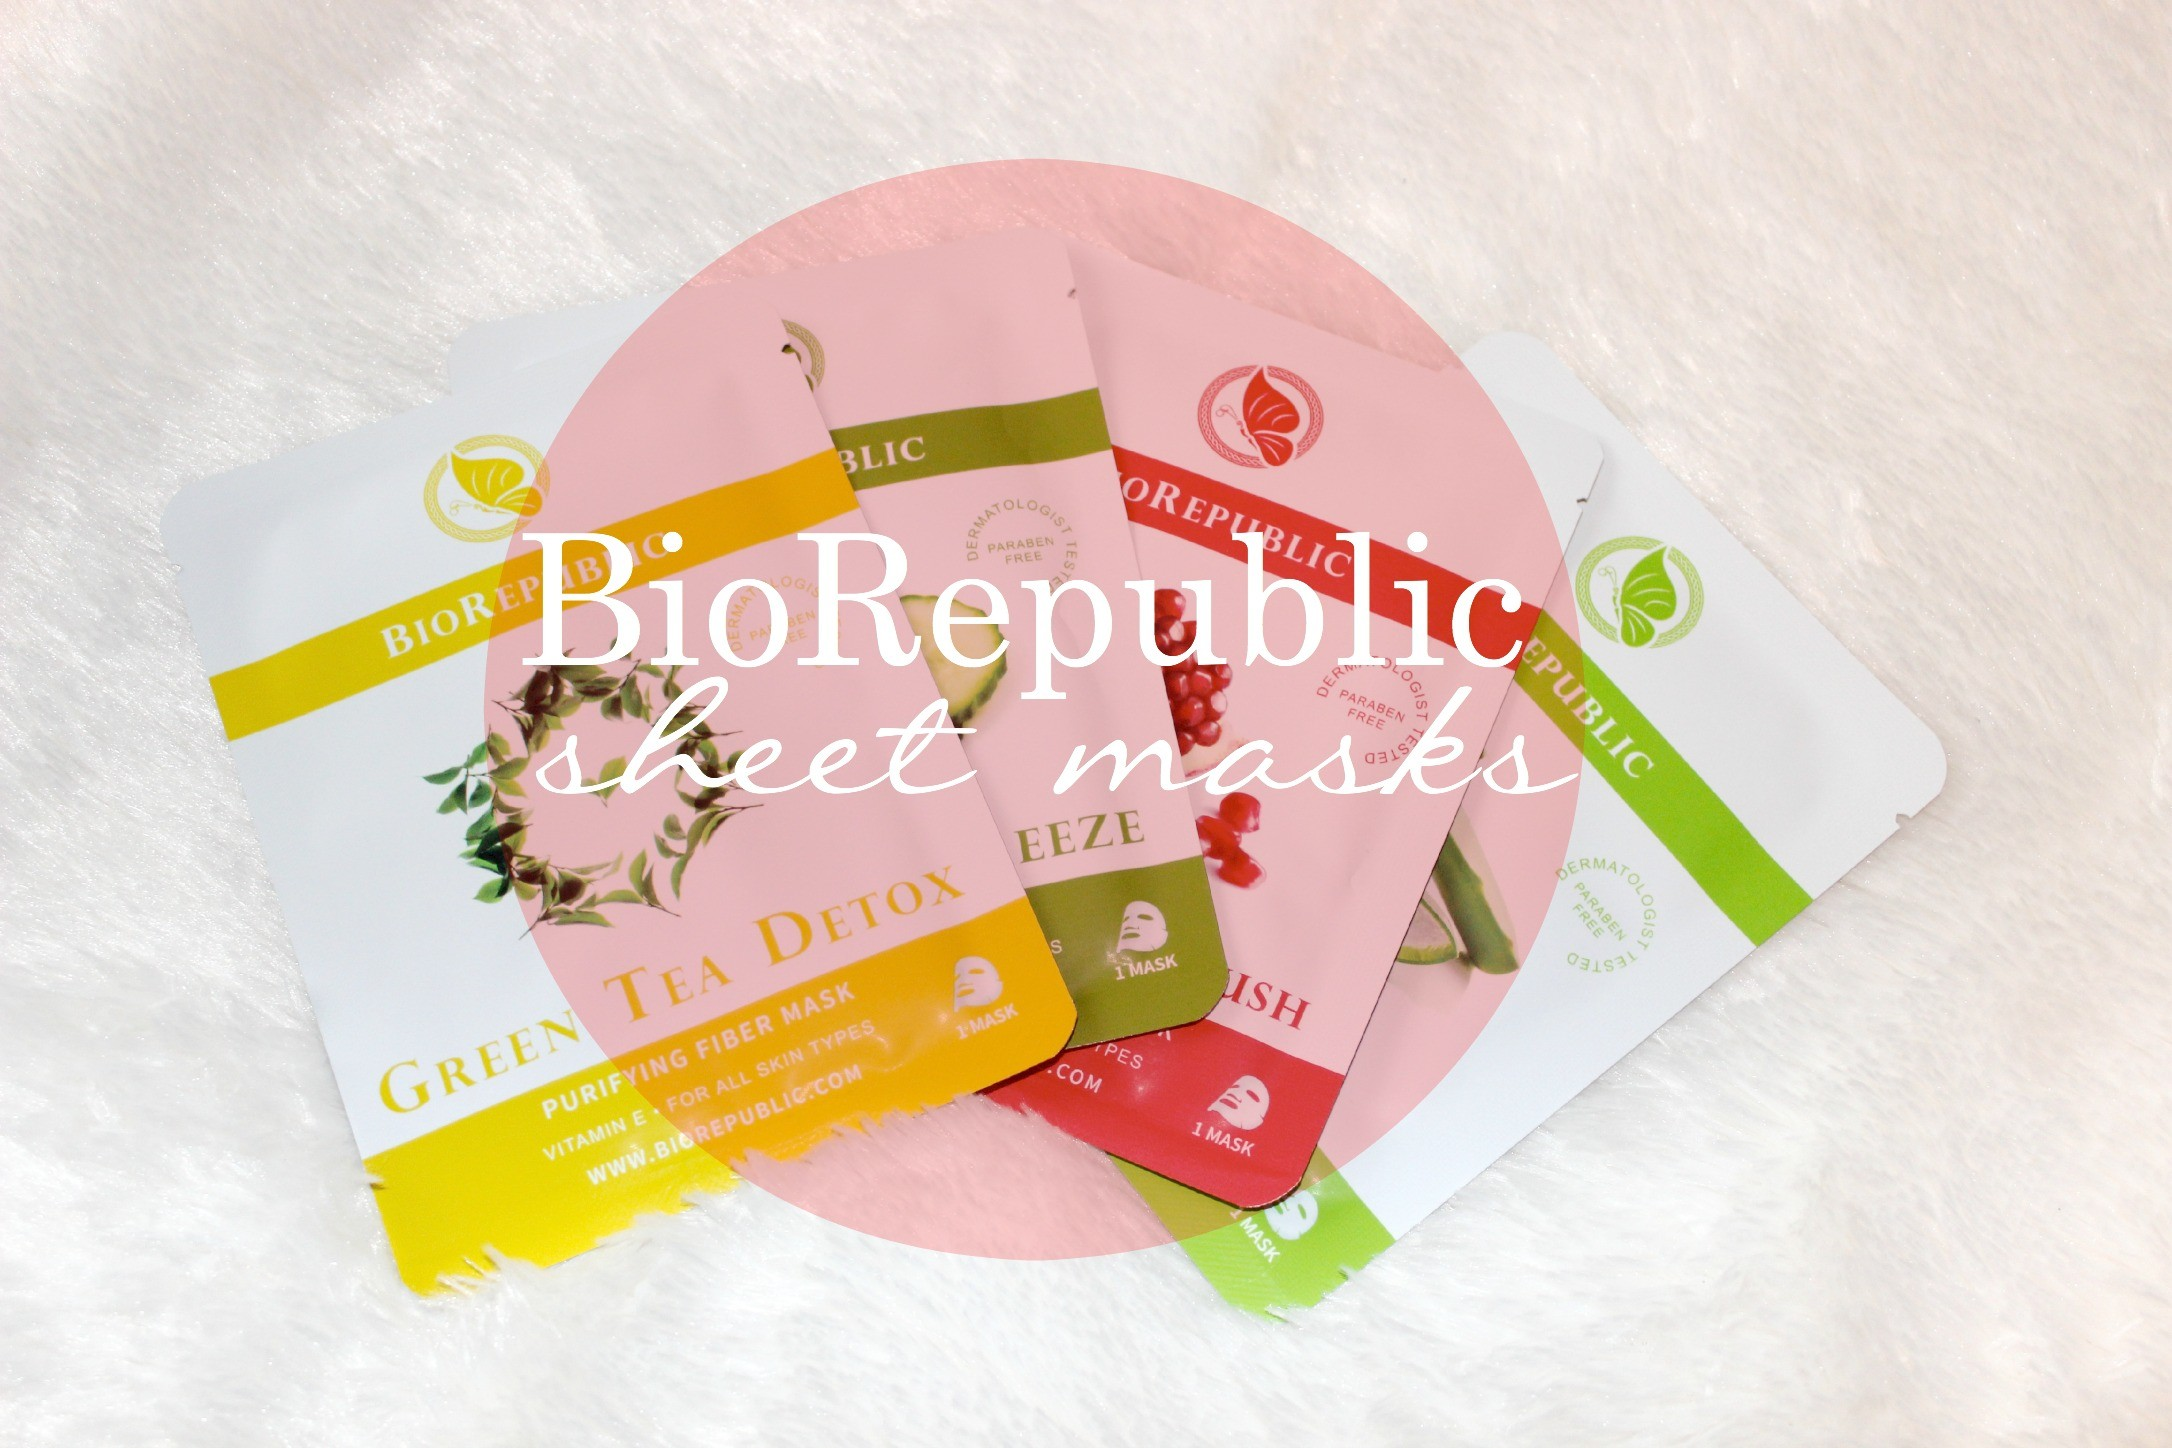 biorepublic sheet mask tutorial and review